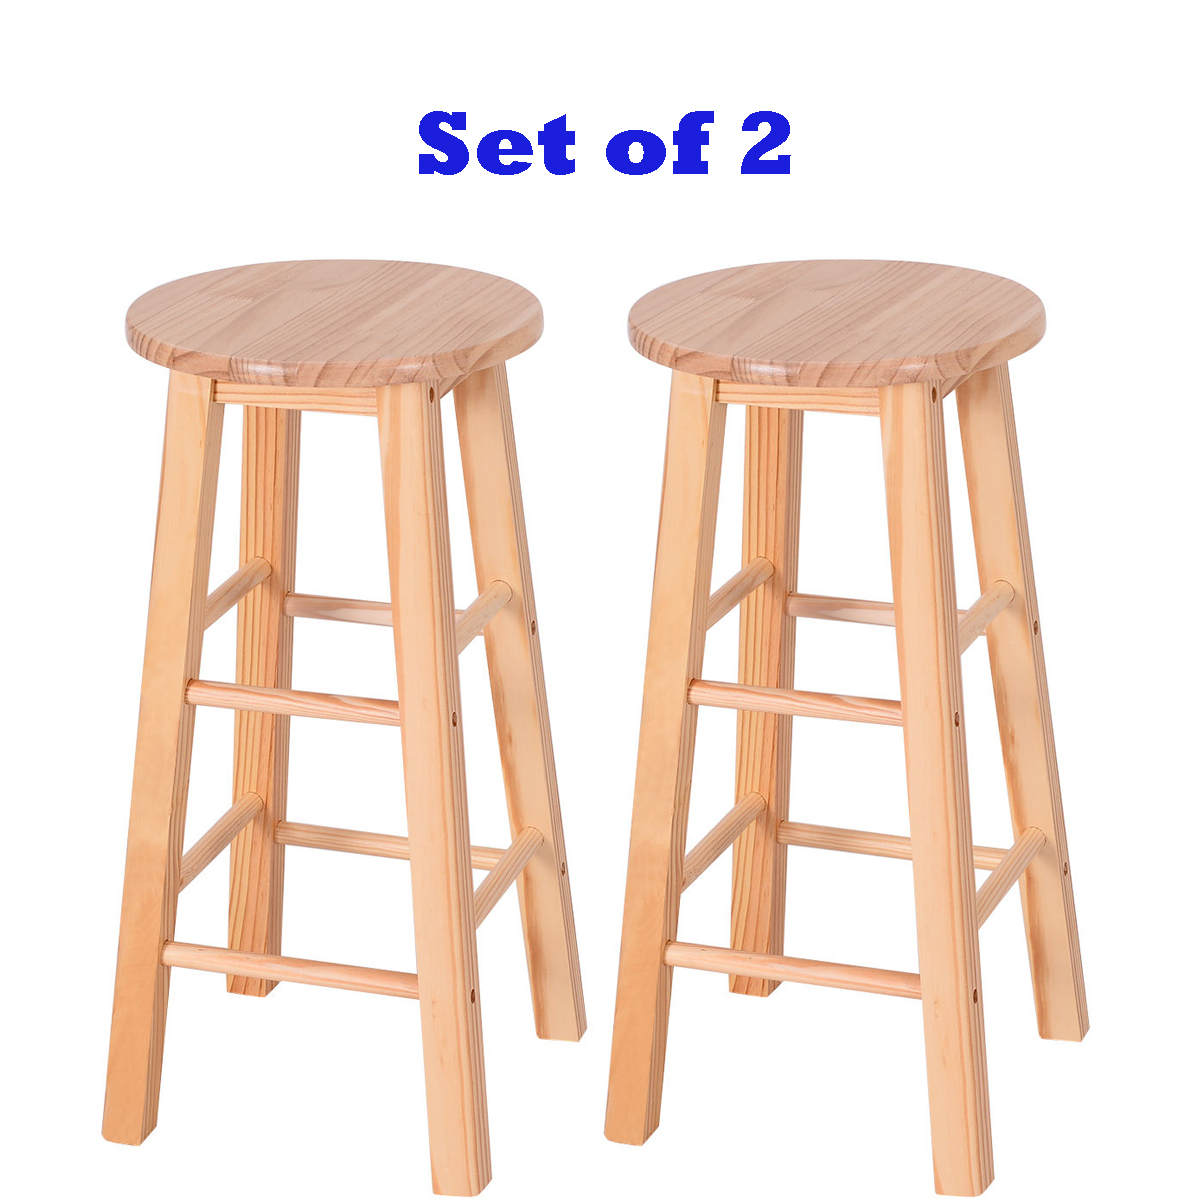 Set Of 2 Wood Counter Stools Bar Stools Dining Kitchen